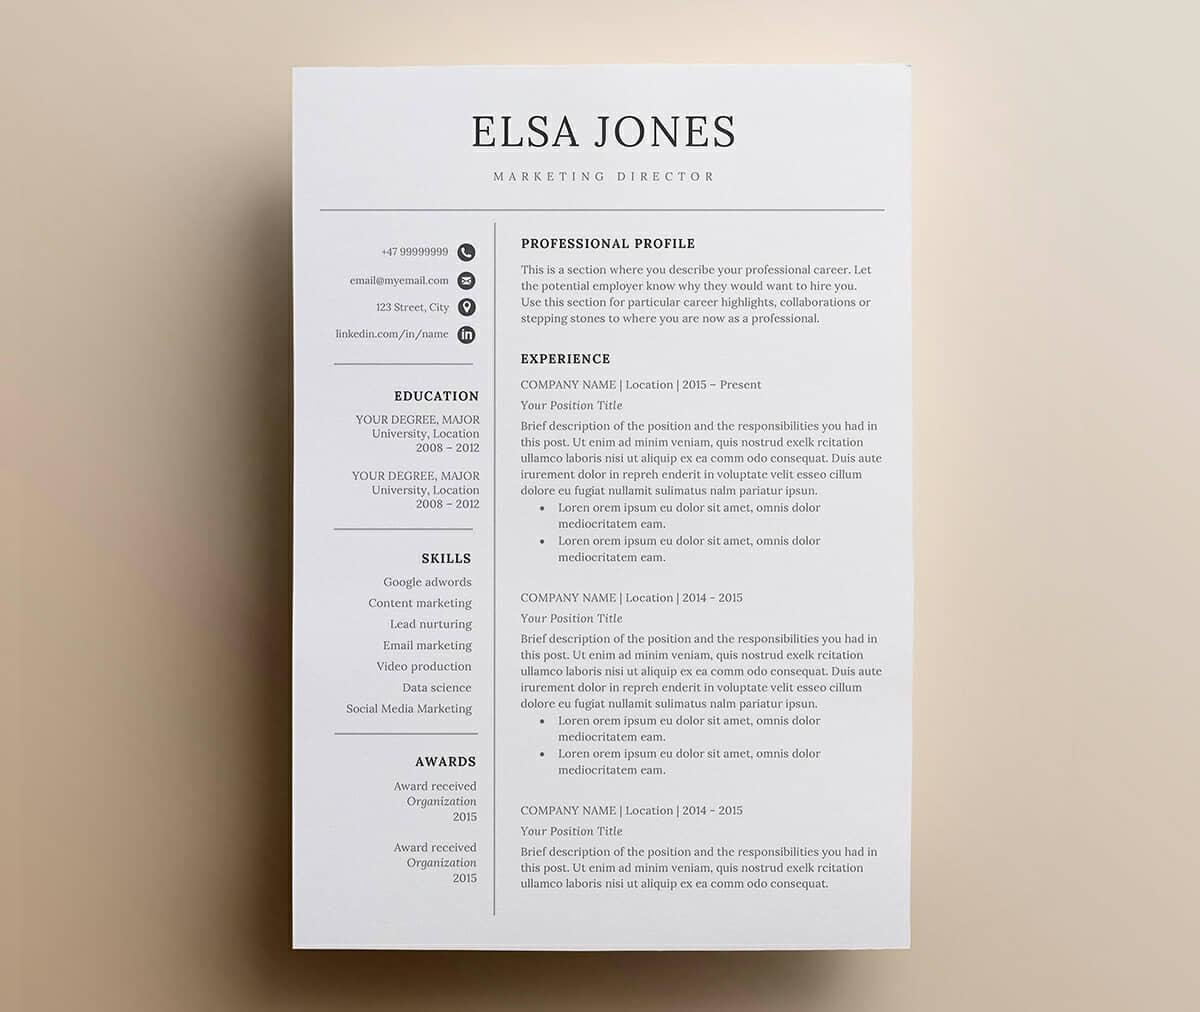 clean basic resume example with elegant font